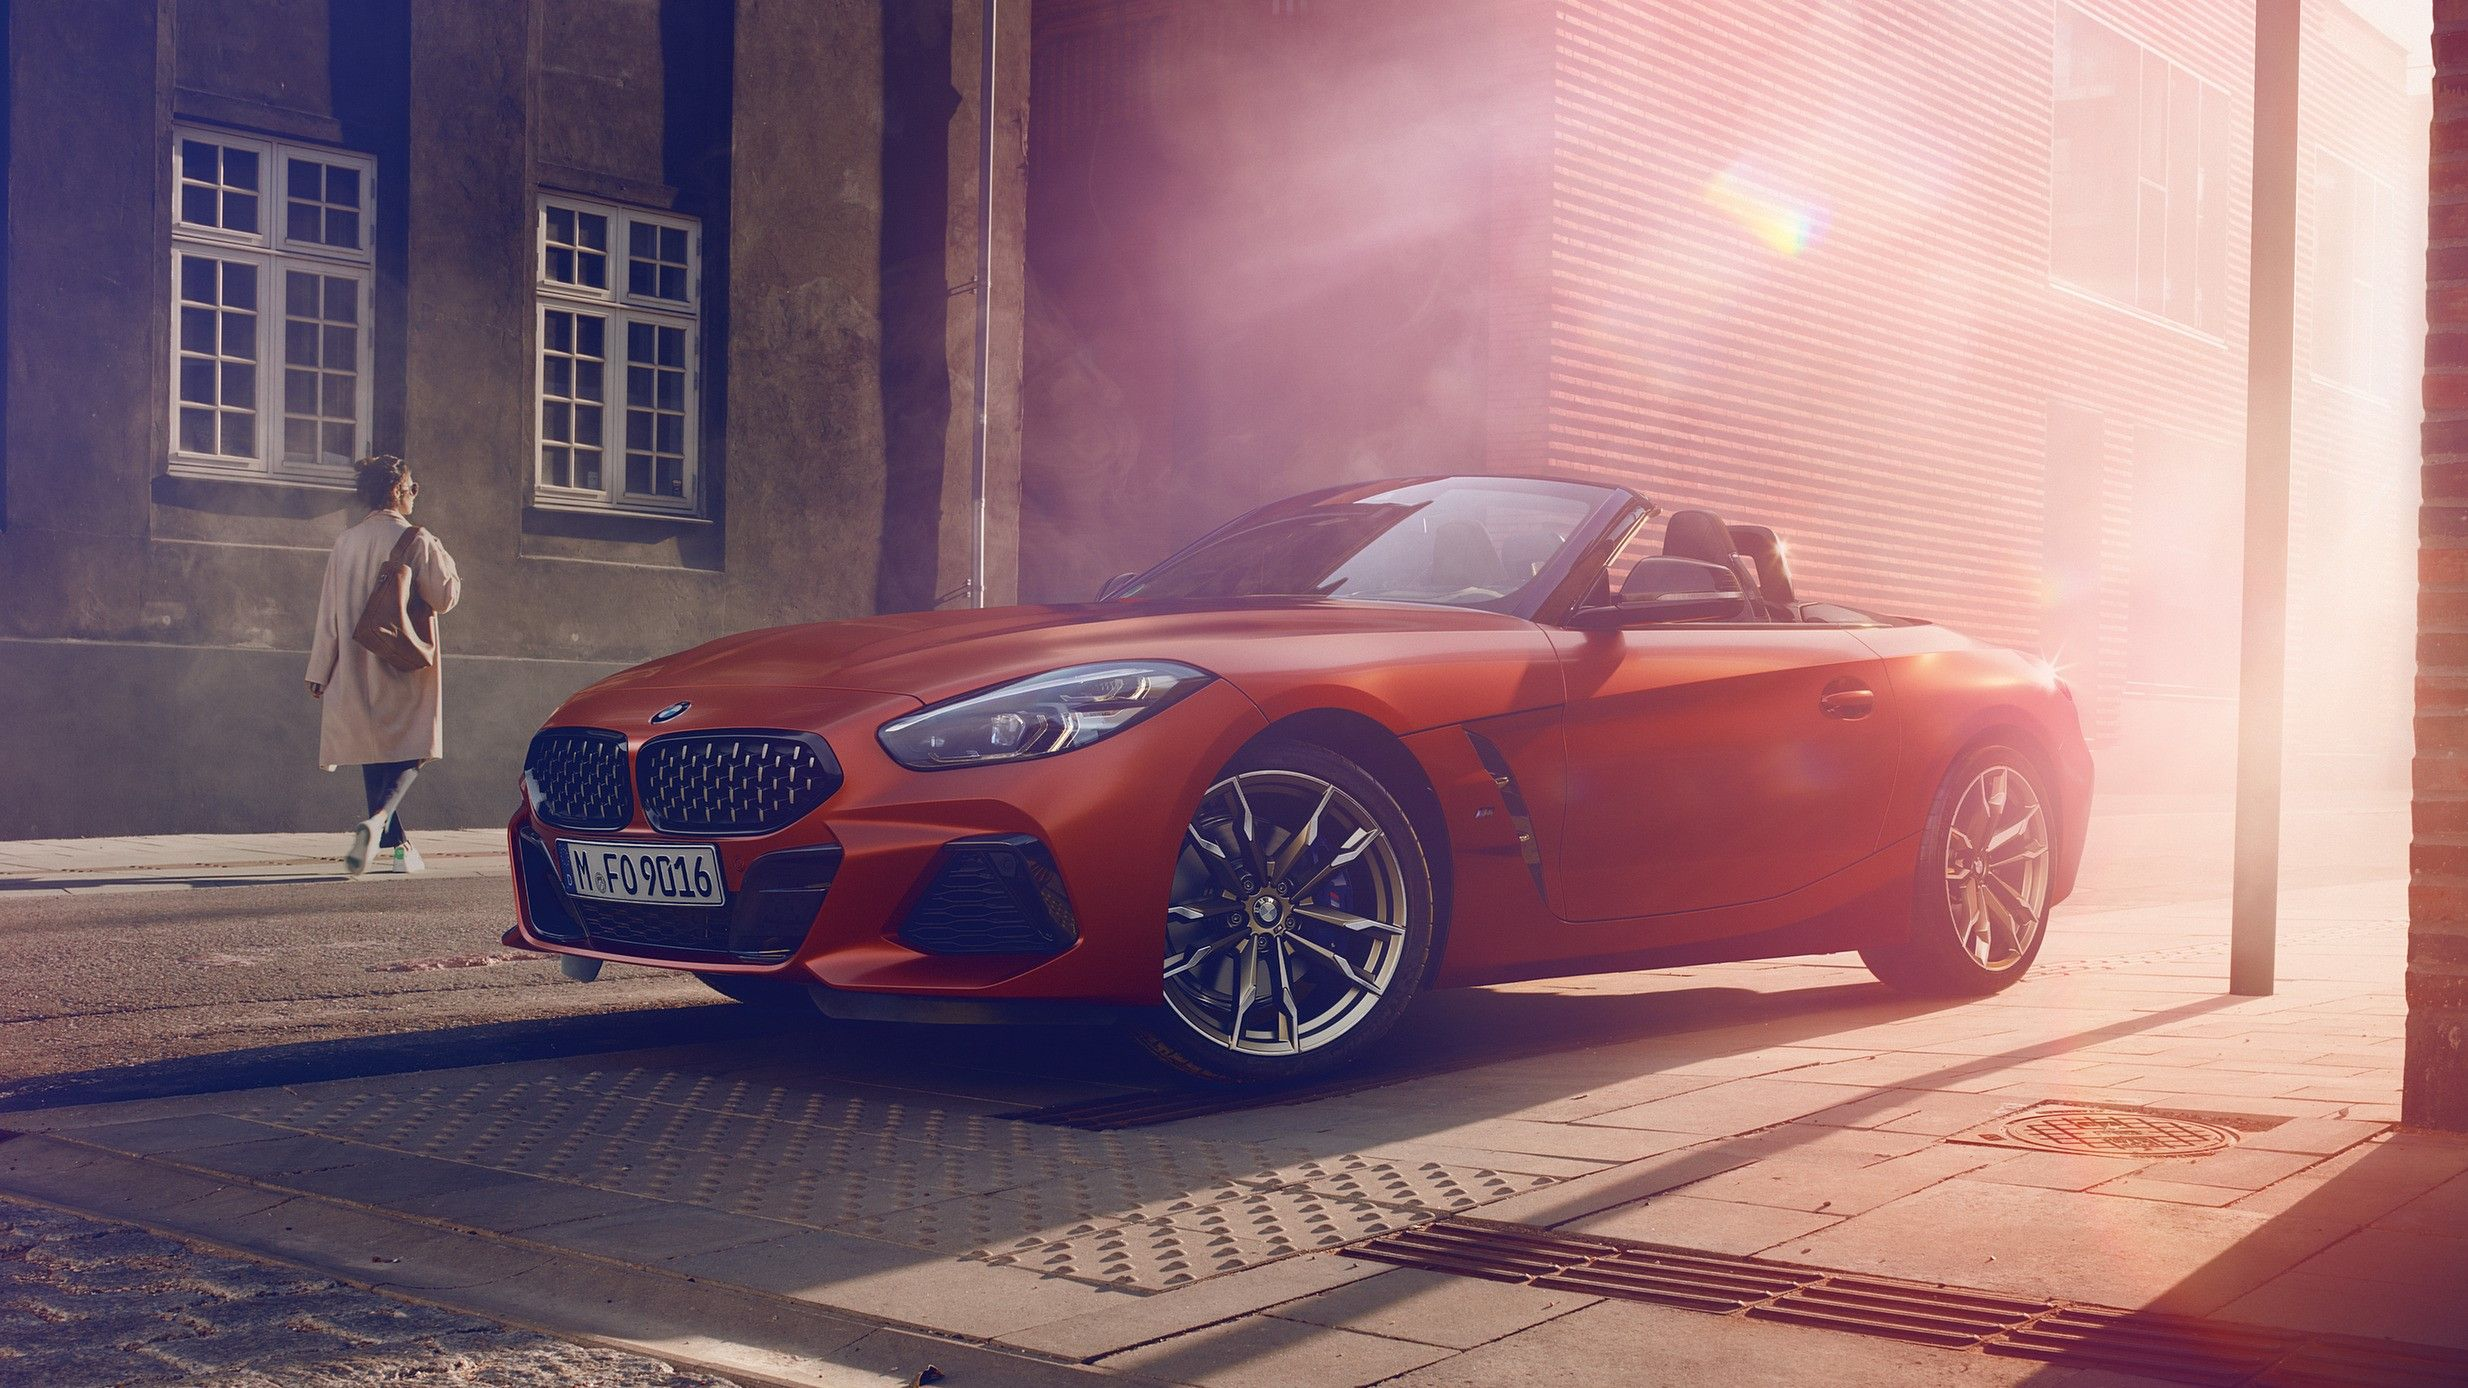 2021 Bmw Z4 Review Release Date M40i Performance Features Mpg And Rivals Compared